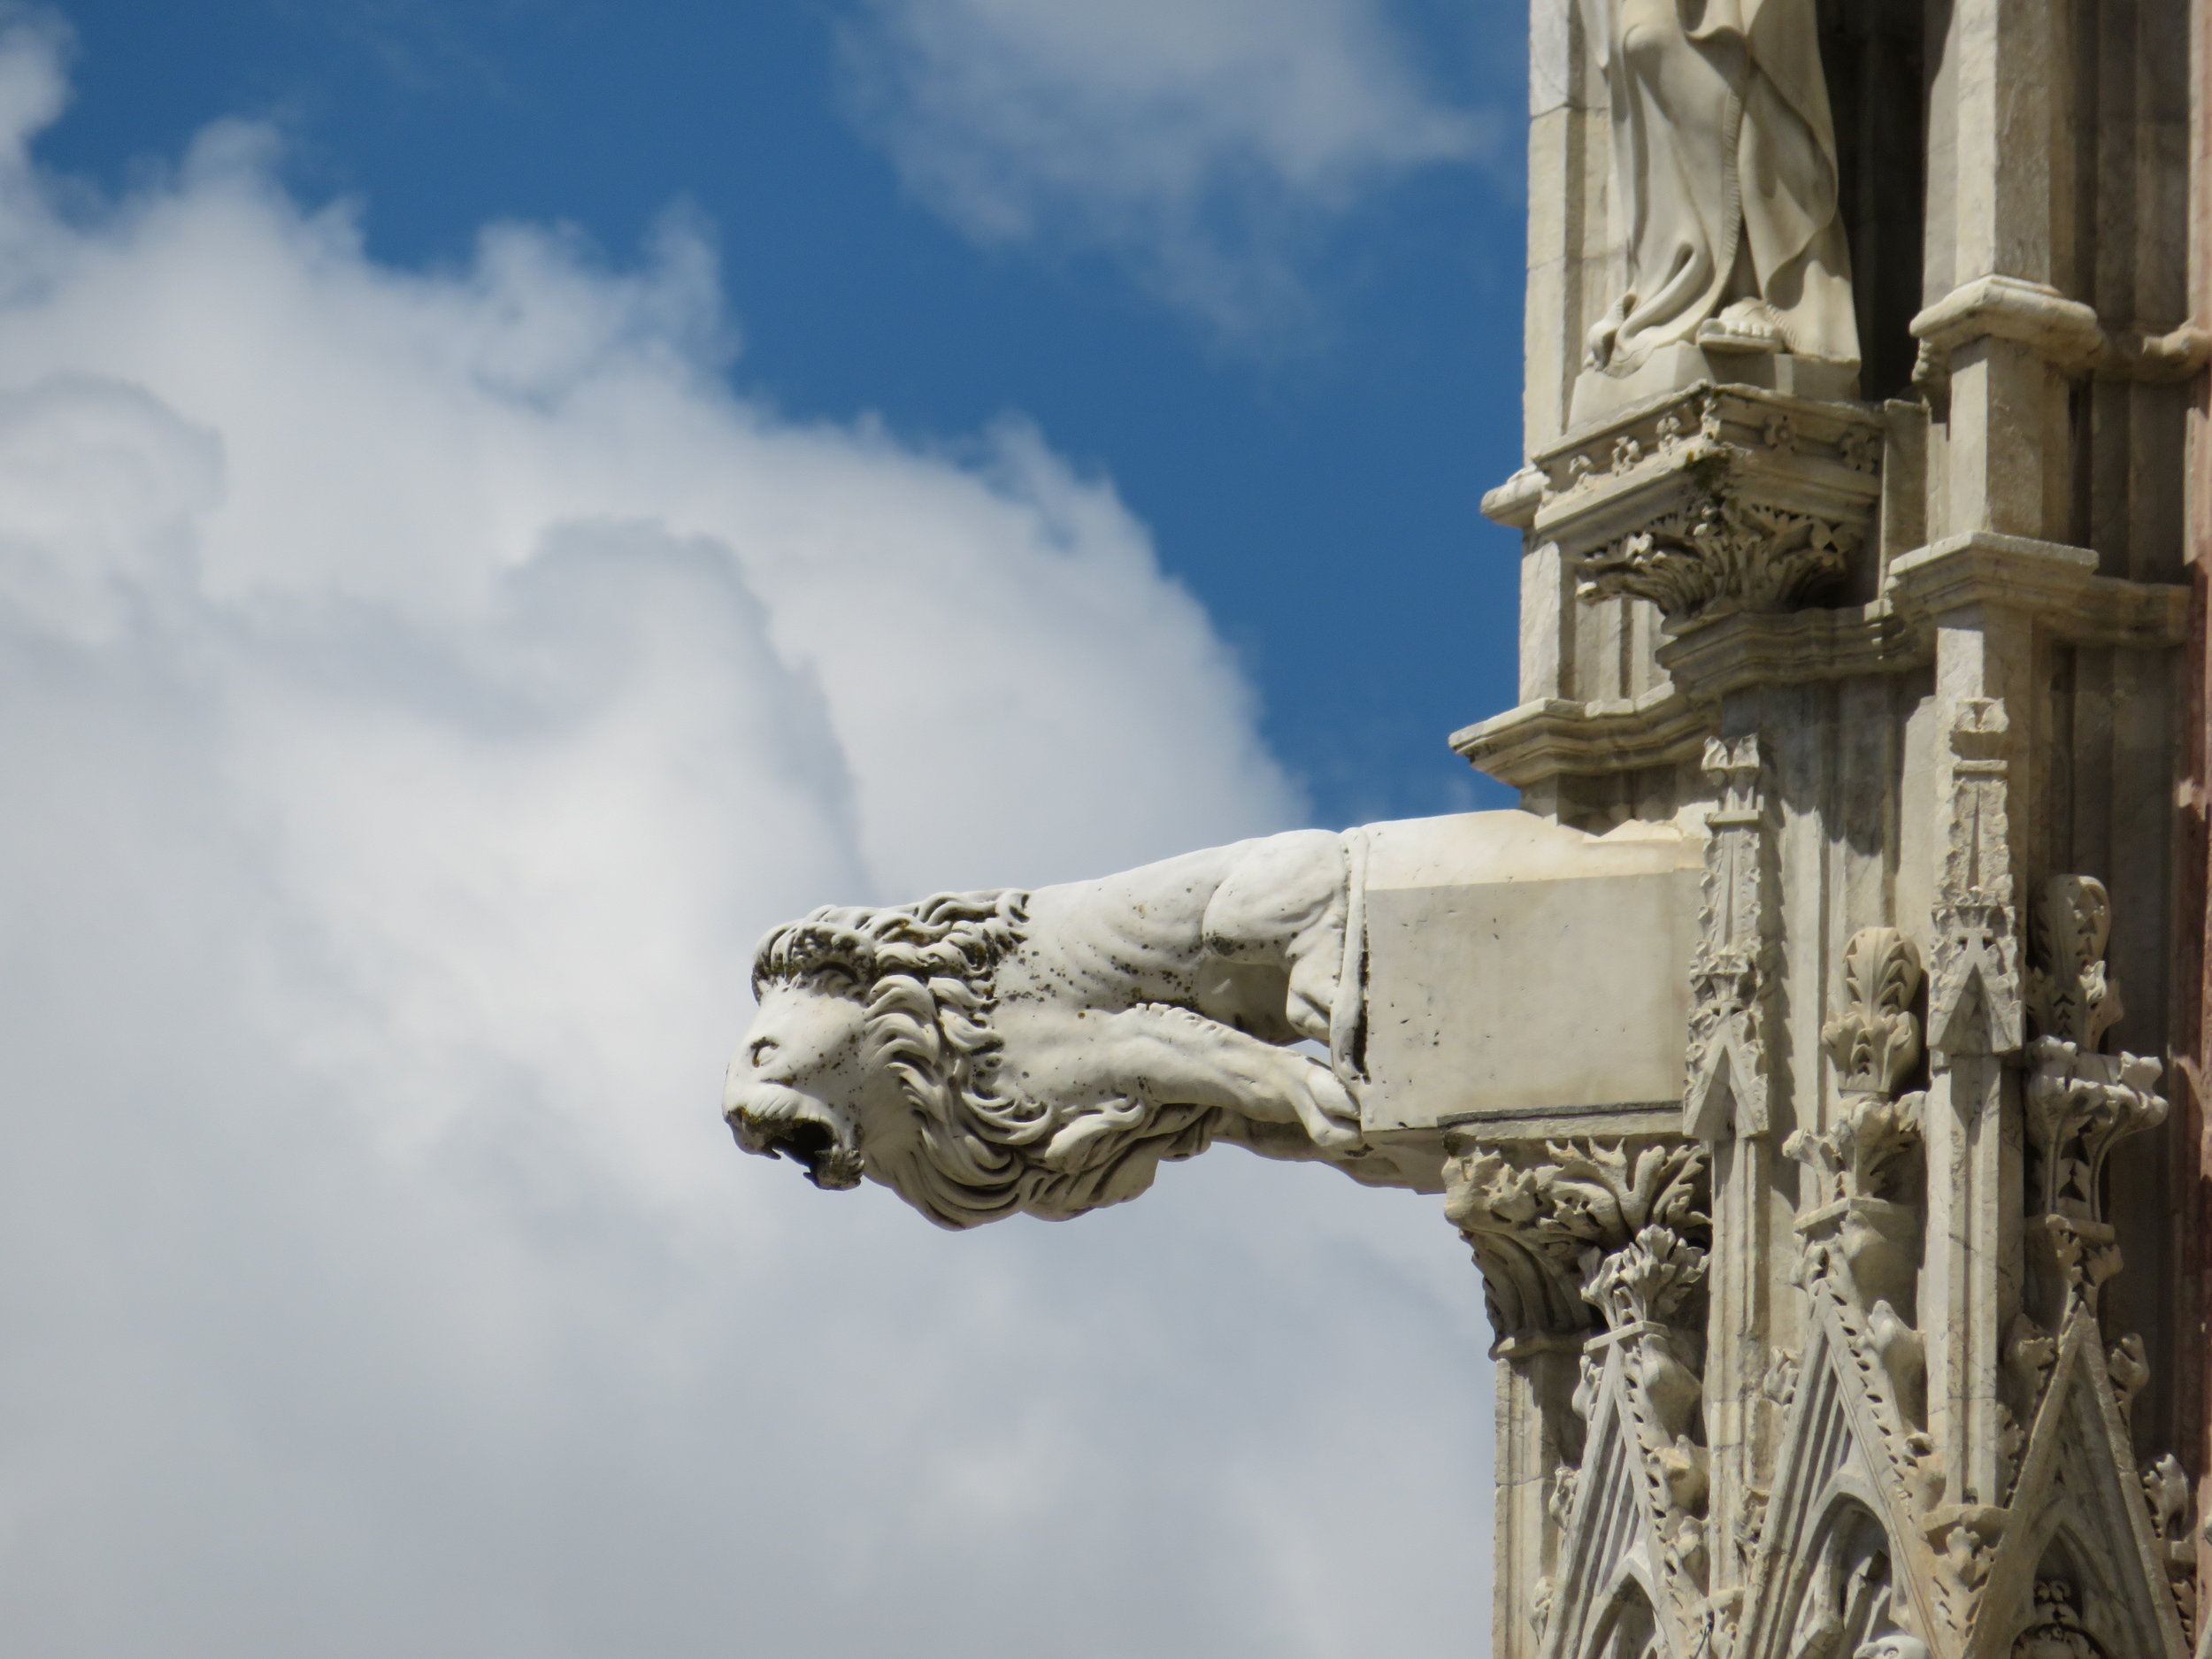 Gargoyles, grotesques, saints and demons adorn the intricate facade of this cathedral.